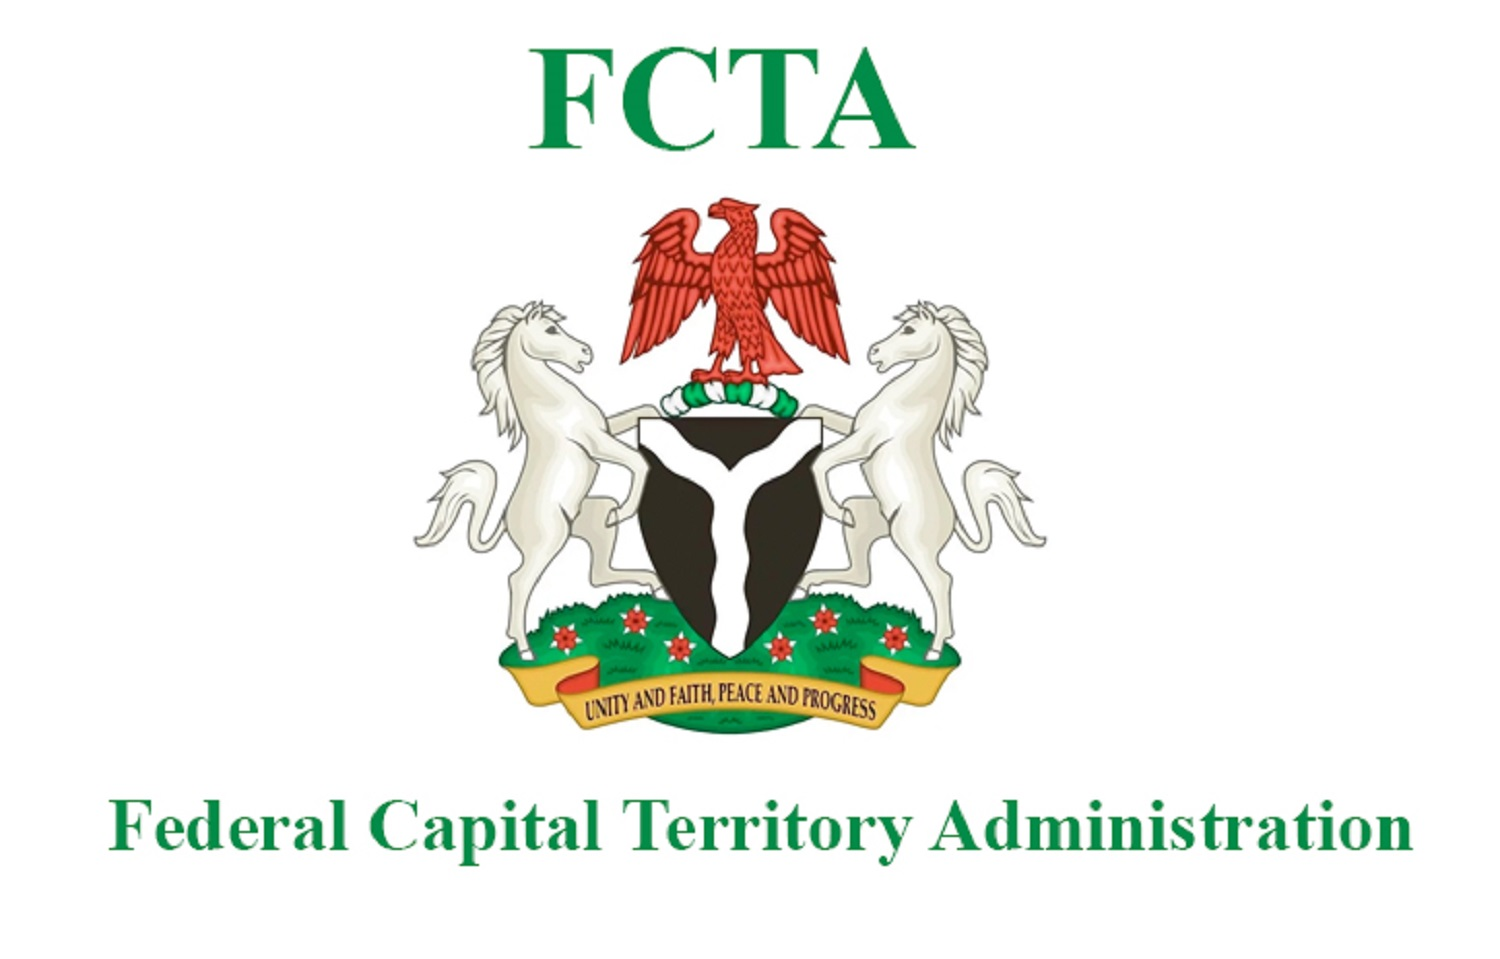 """The Federal Capital Terriory Administration (FCTA) says it will demolish Cool Leo and Paris Nightclubs in Karu Site for arbitrary change of land use from residential to mix use of commercial and hospitality purposes. Mr Ihkaro Attah, Head, Public Enlightenment, FCTA Ministerial Taskforce on Enforcement of COVID-19 Protocols, disclosed this while speaking with newsmen on Sunday in Abuja. Attah said that FCTA authorities would stop at nothing to ensure demolition of the two popular night clubs unless they reverted to approved residential land use for the area. """"Two clubs in Karu Site, very offensive clubs, have been asked to close. They operate in residential area, against COVID-19 protocols and disrupt the peace of residents at night. """"They are Paris Club and Cool Lea and they have been sealed off indefinitely. """"If they revert to the original land use, should they refuse to revert, then we invoke other aspects of FCT Master Plan and demolish. We will not allow them to continue disturbing the neighbourhood."""" He also revealed that 29 persons were arrested over violation of COVID-19 guidelines, explaining that they were apprehended, brought before the court and subsequently the judge found them guilty and they were given the option of fine, which they all paid the fines. """"We want residents to know that the fundamental thing to do is to obey health protocols, conform with it going forward, and ensure that they live peacefully and happily. """"So all we are doing is to vigorously continue with FCT COVID-19 contravention enforcement directive given by the Minister, Malam Muhammad Bello and the FCT Commissioner of Police, Bala Ciroma, our Chairman that we go out and sustain COVID-19 health protocols."""" Attah commended level of compliance with COVID-19 protocols in Abuja, saying it is very high, compared to other places in the country."""